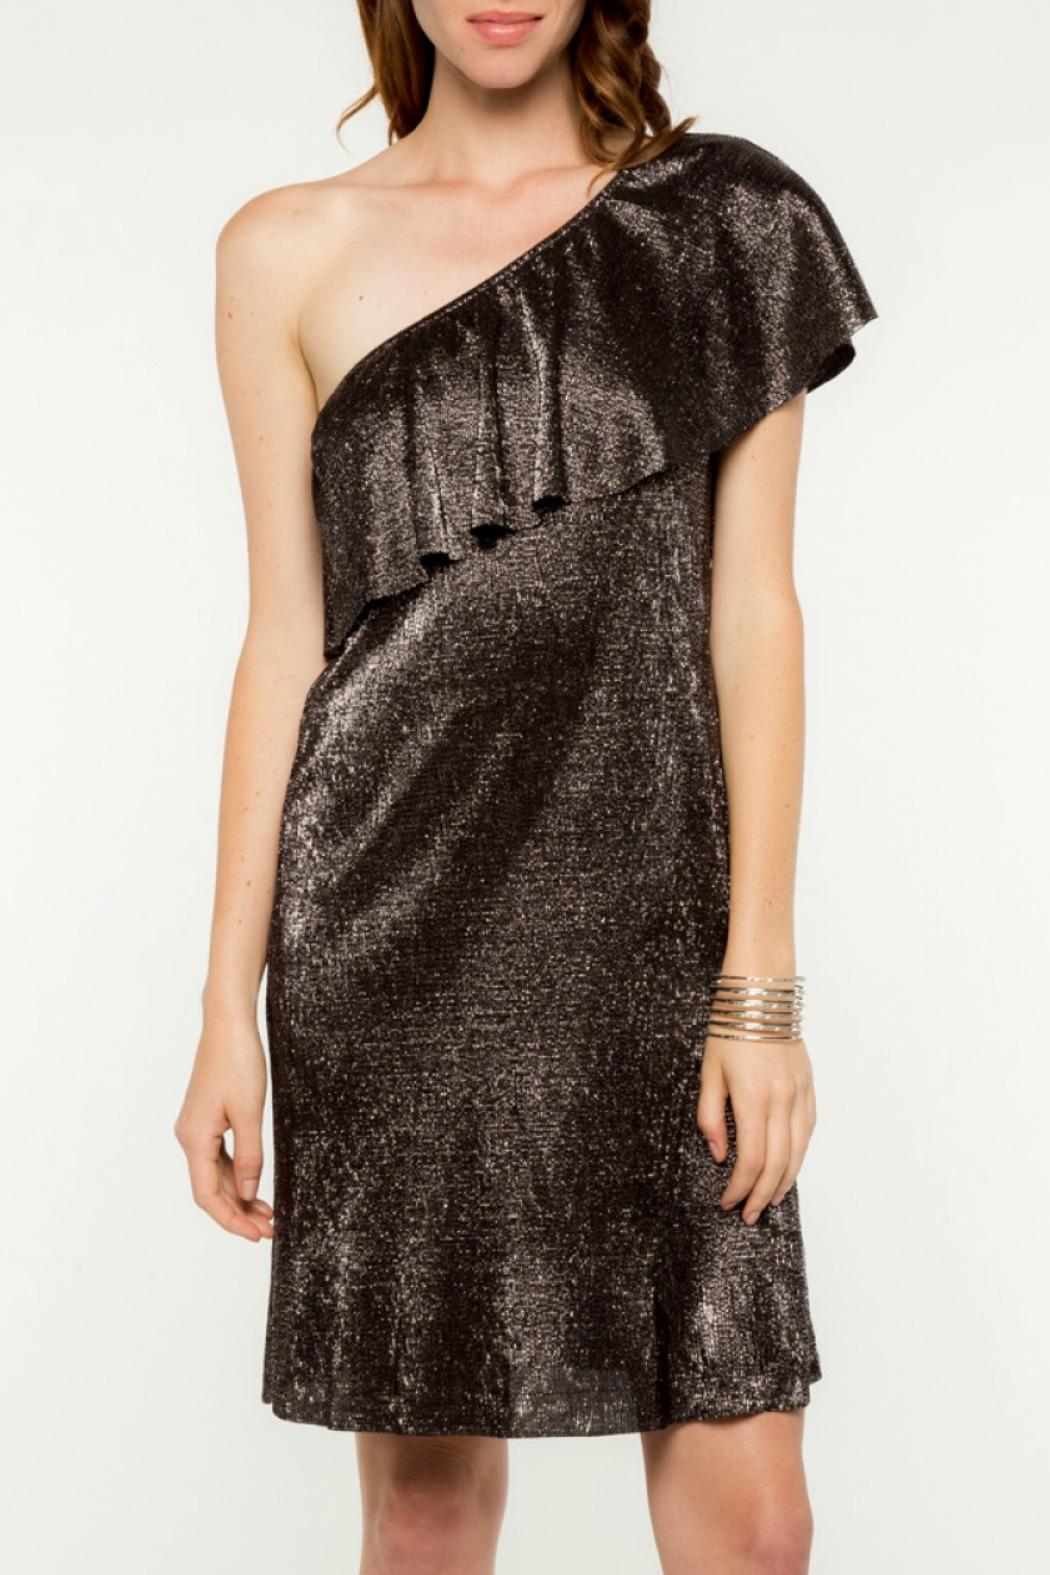 Everly Merry Metallic Dress - Front Cropped Image